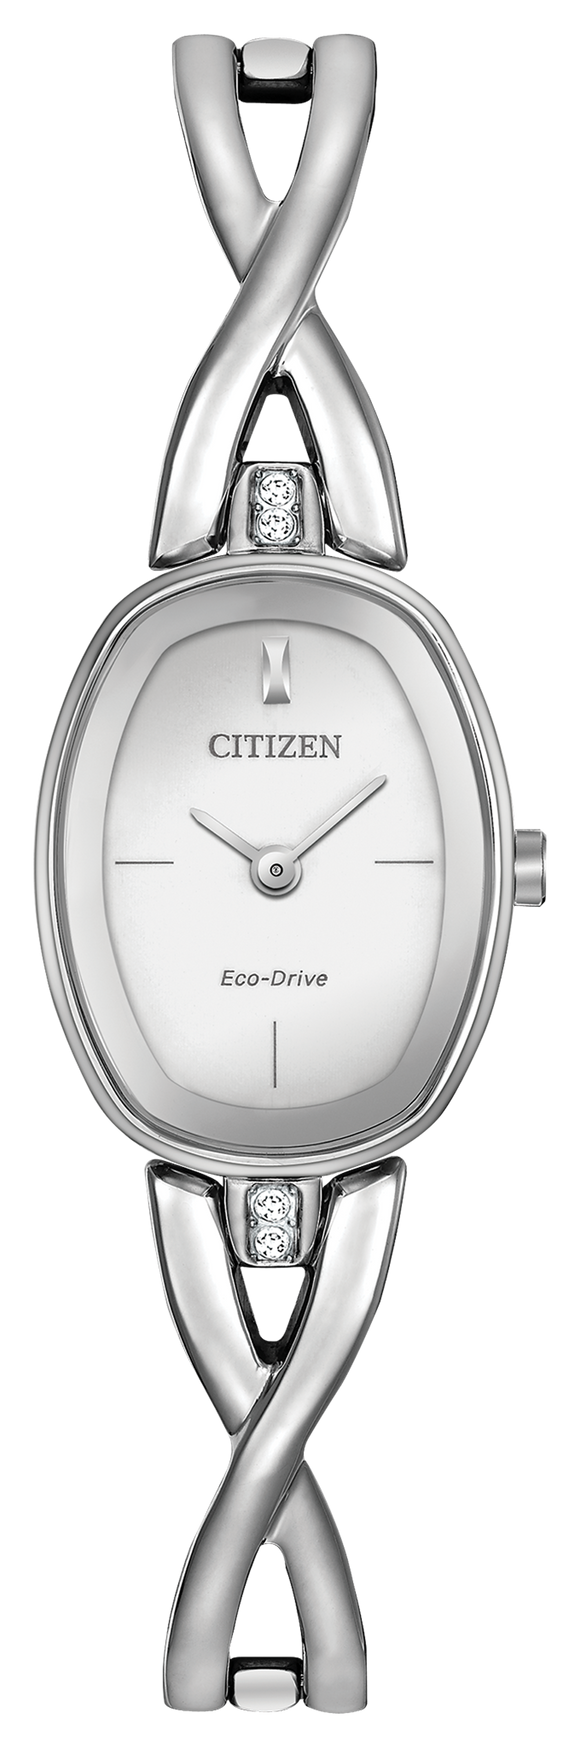 Citizen Eco-Drive EX1410-53A